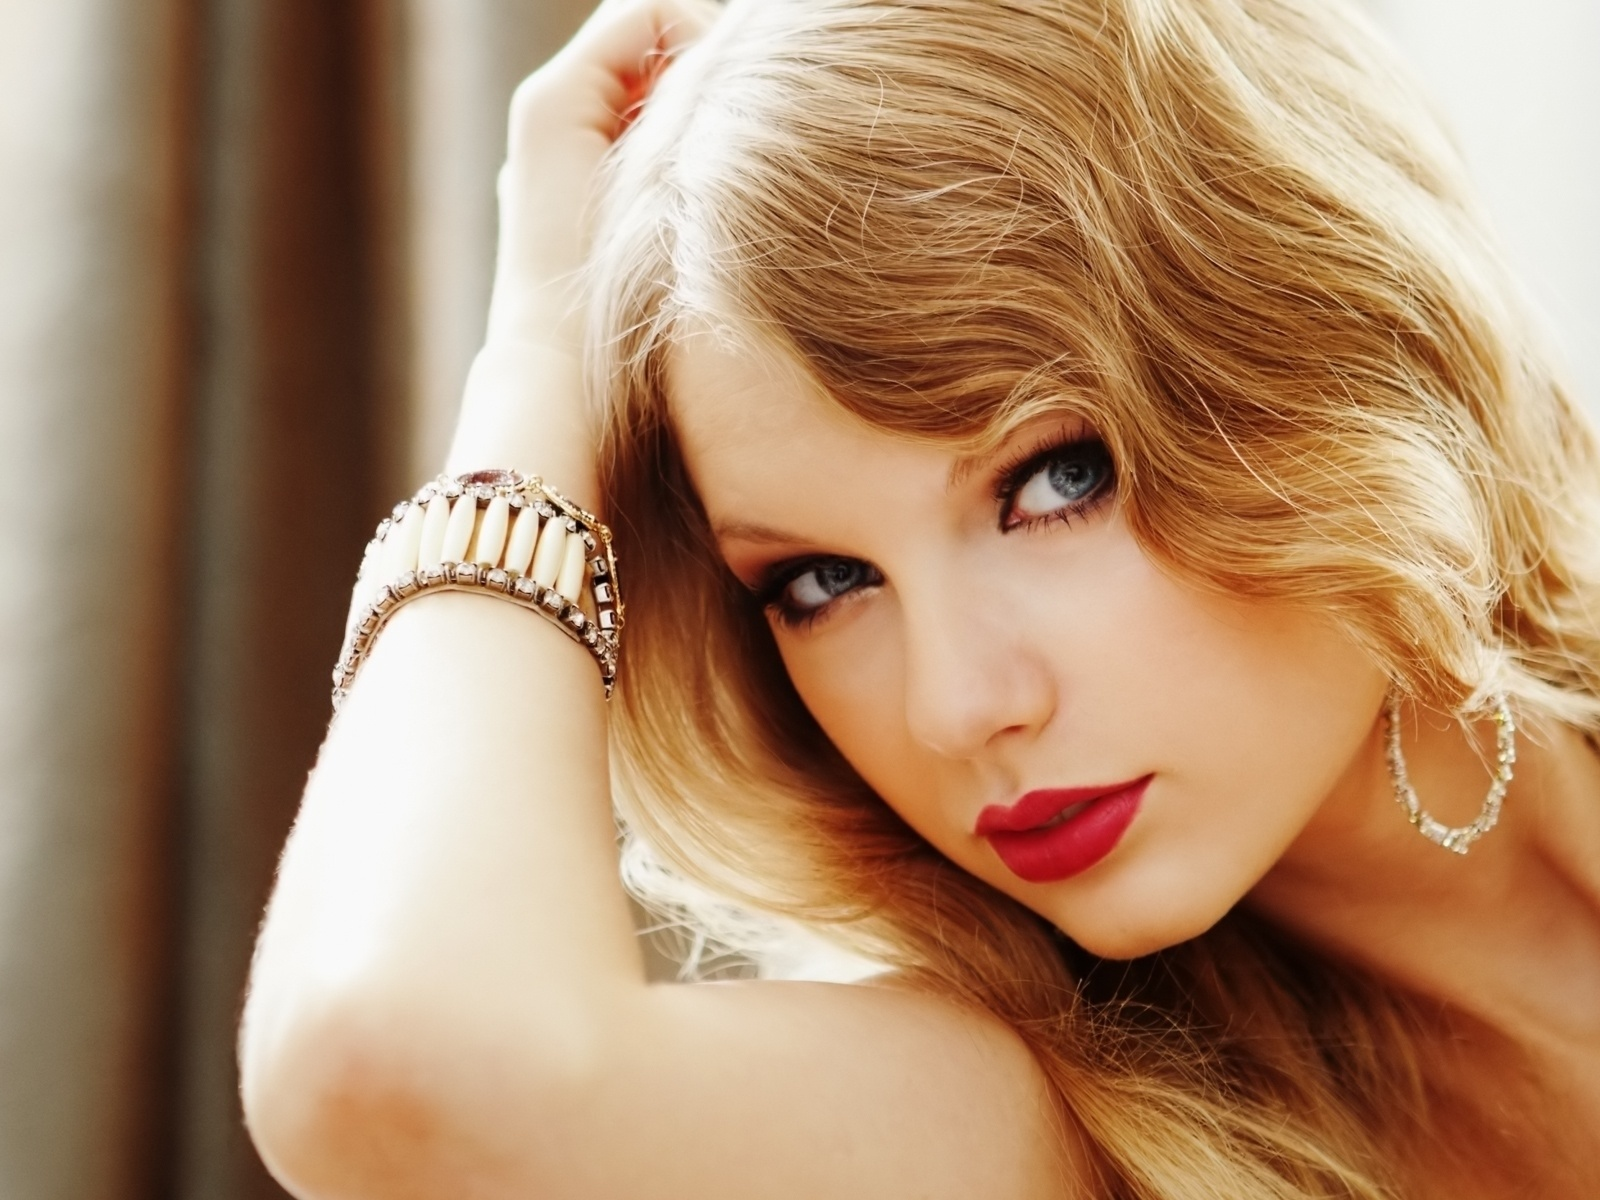 http://3.bp.blogspot.com/-4ZJRi4h_IXo/UDQ0vhpA2zI/AAAAAAAABCg/C5mcA4x6nvo/s1600/taylor-swift-hot-red-lipstick-taylor-swift-31650397-1600-1200.jpg